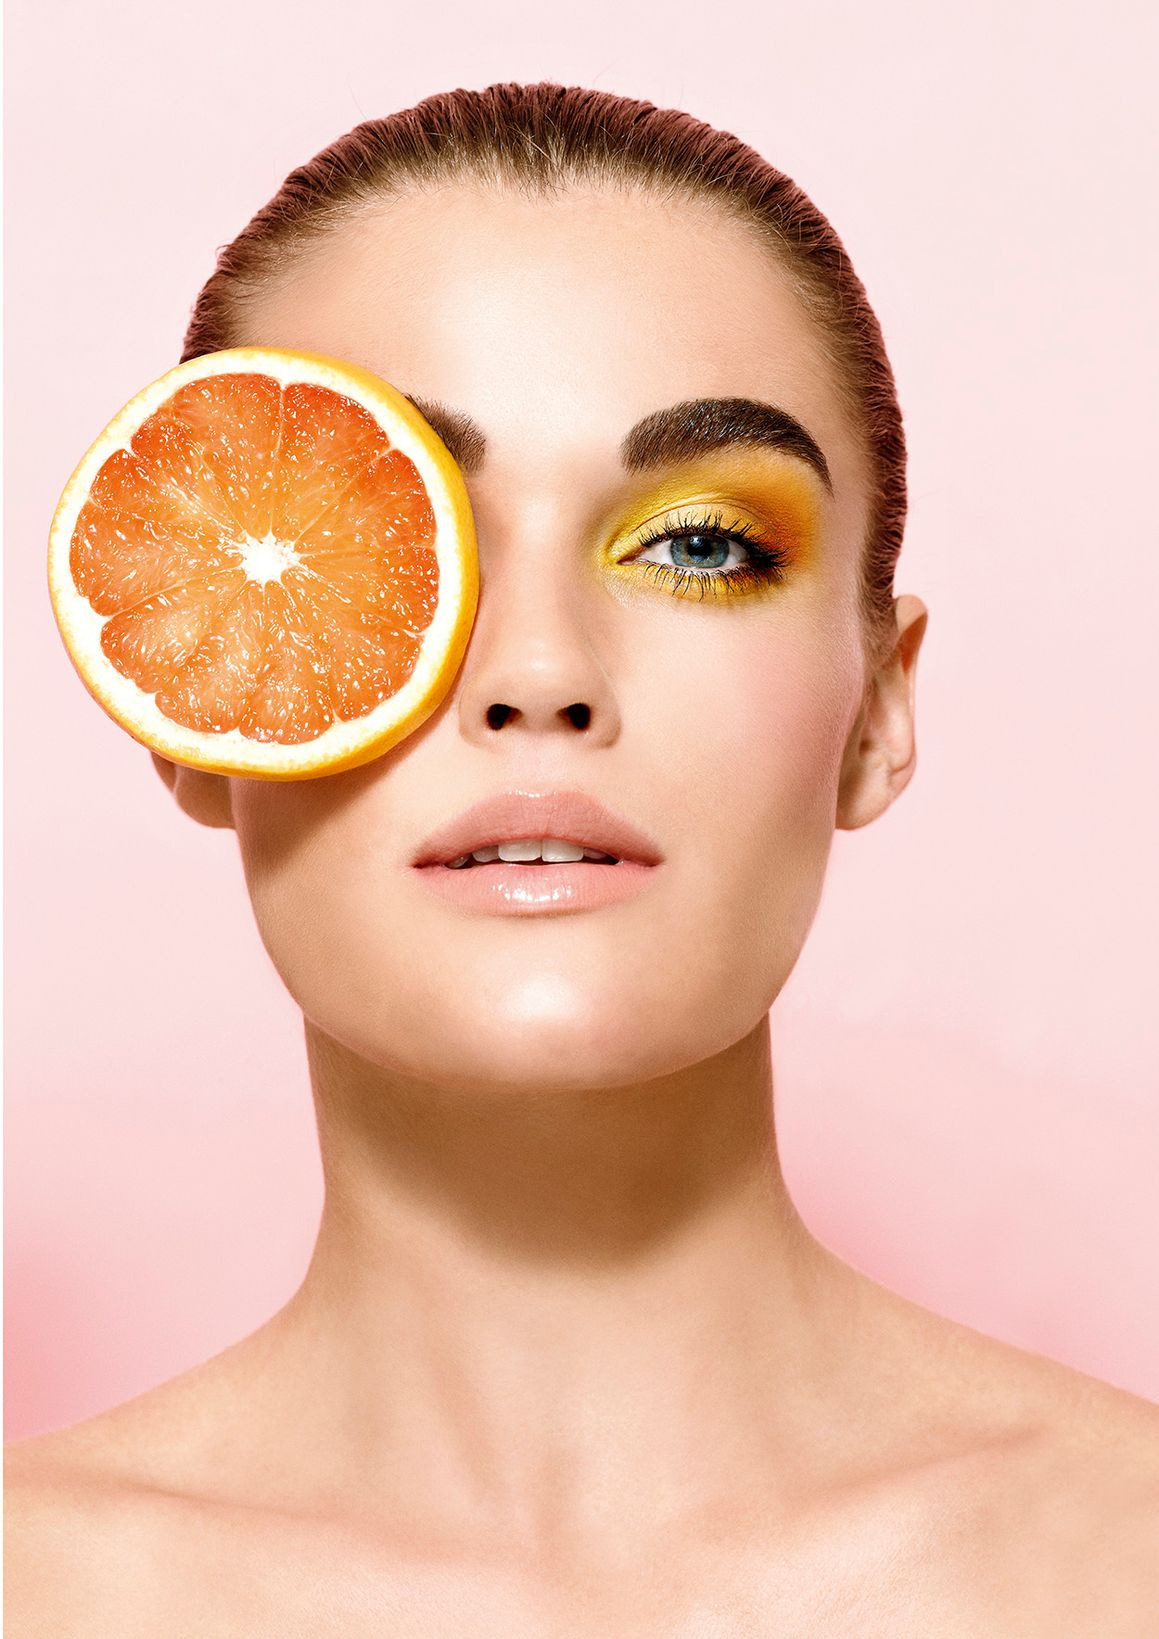 beauty naturel matas skin hair orange